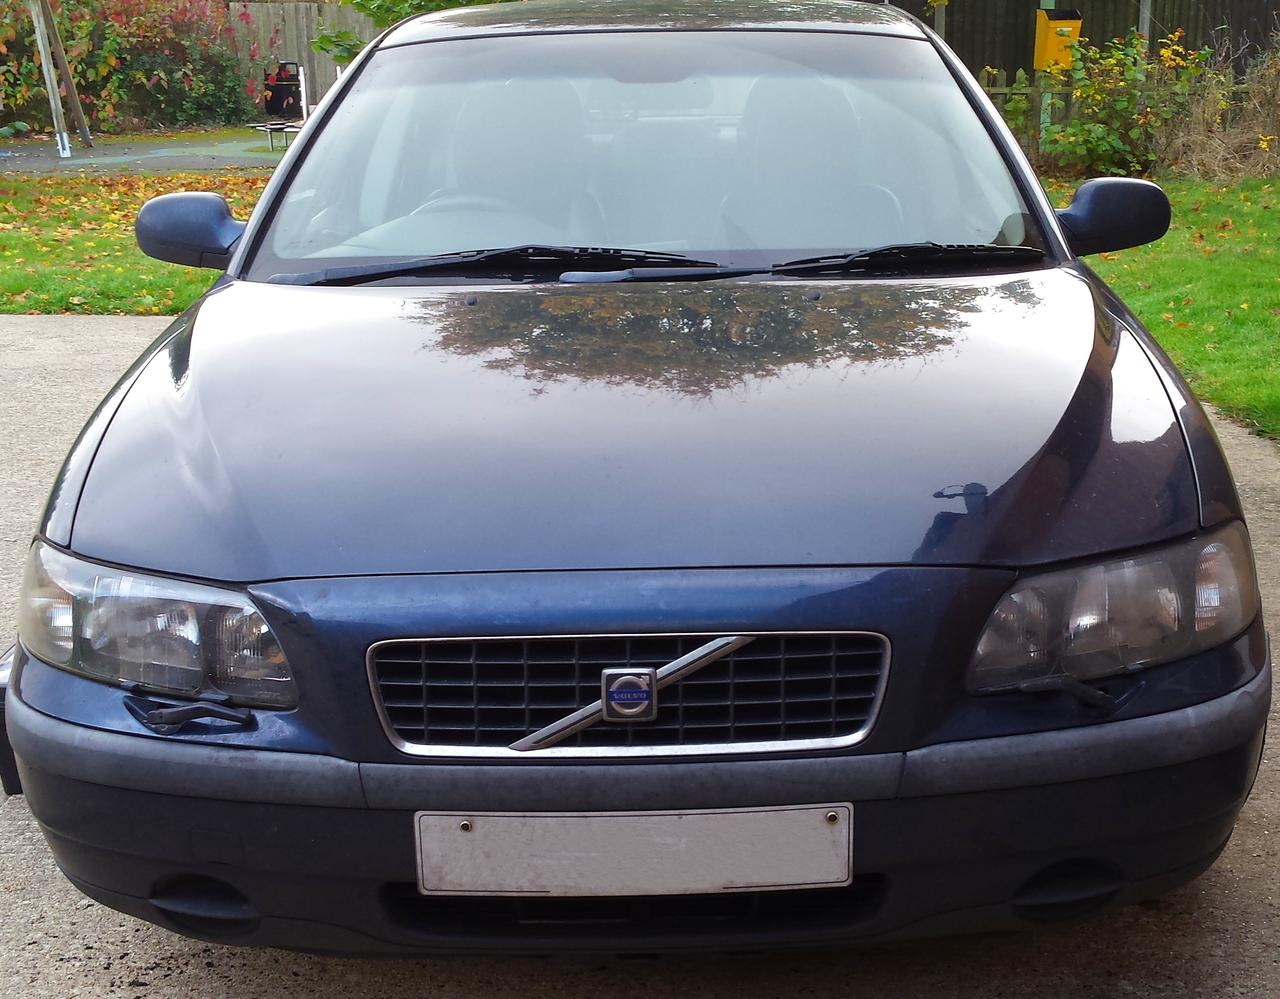 Volvo S60 - New Headlight